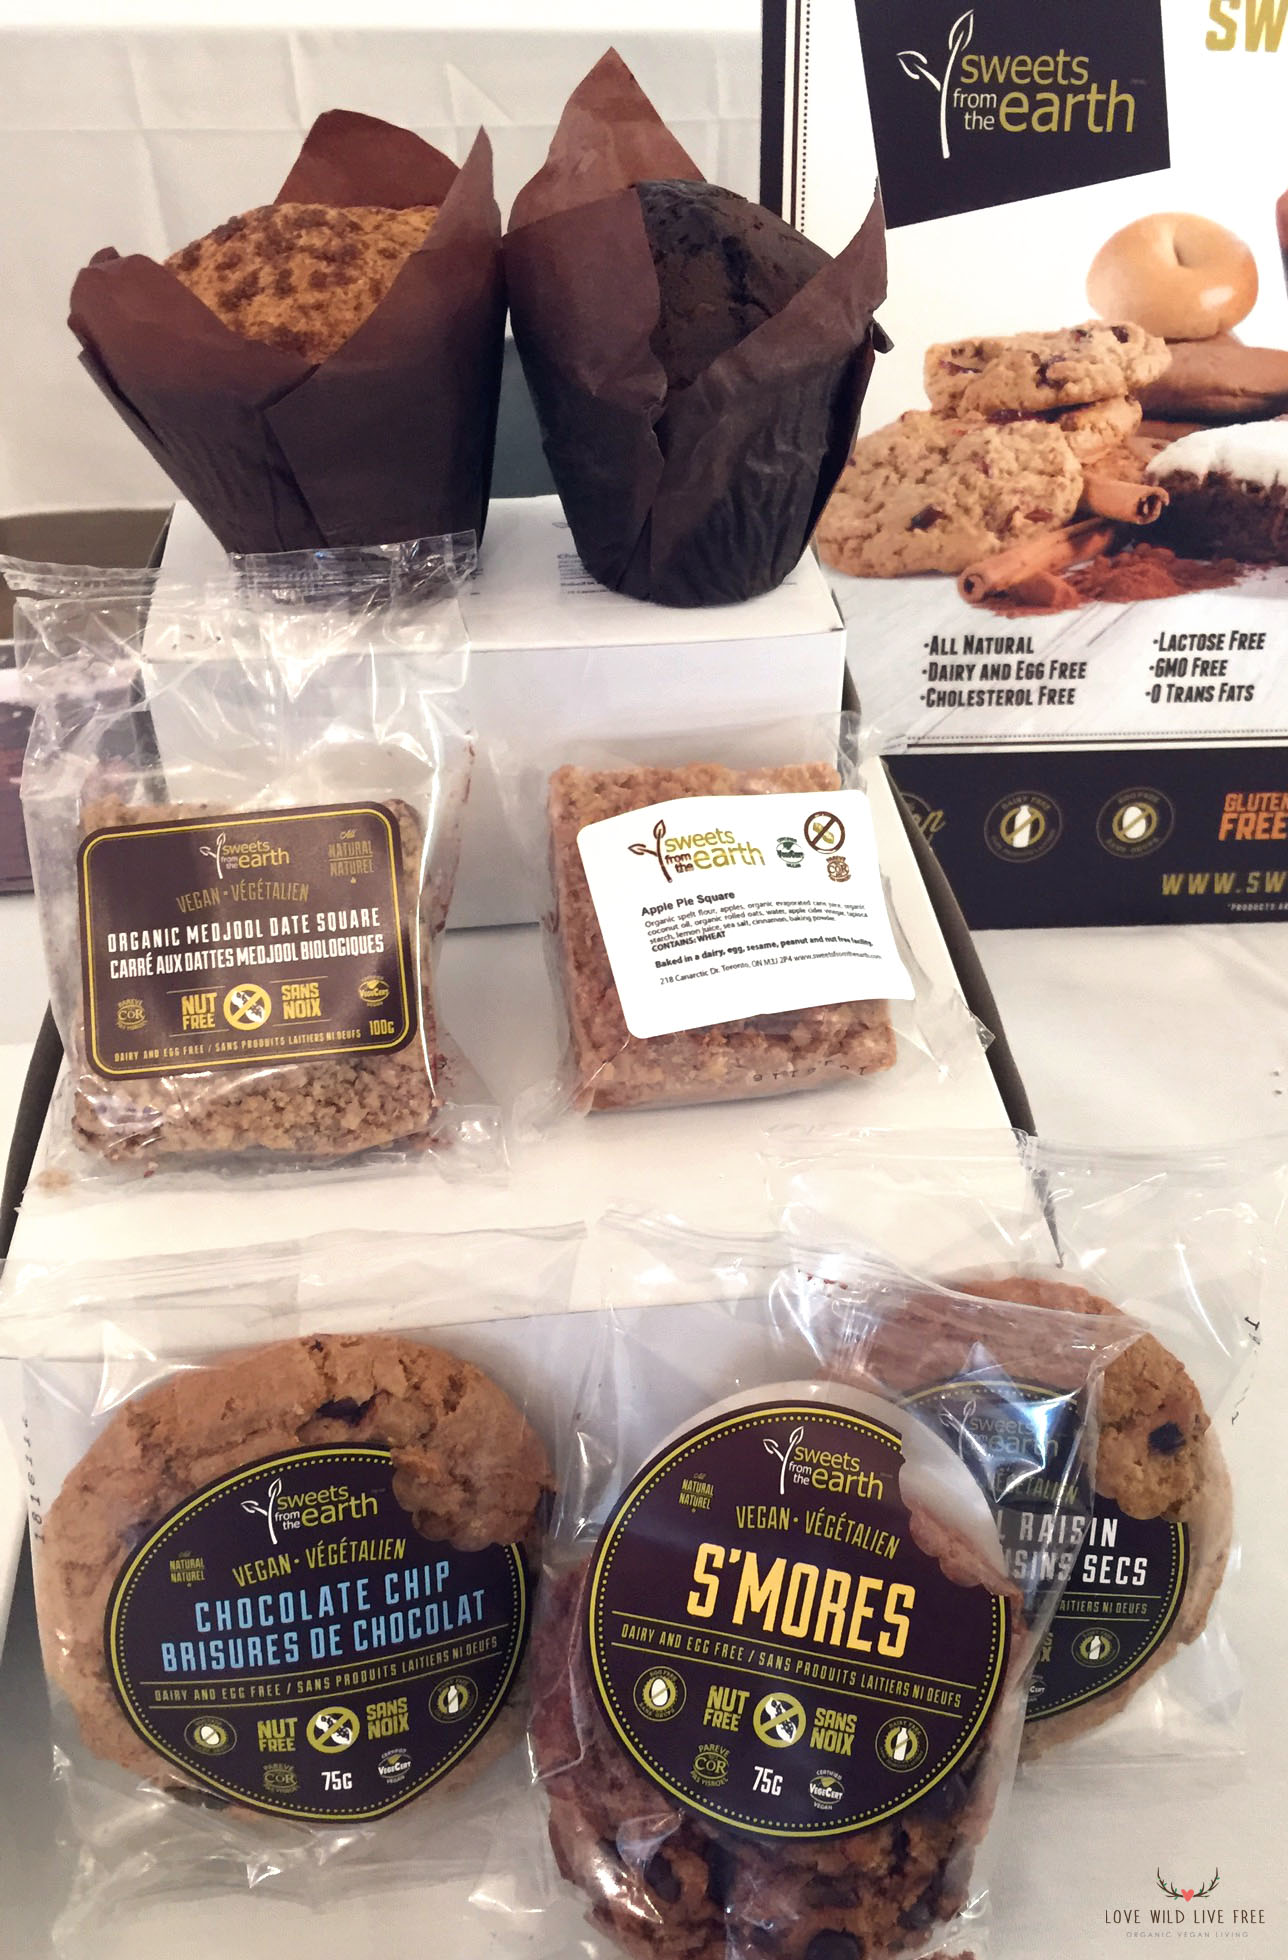 Sweets from the Earth : Two Sampler pack options for Veggielicious, including the Nut Free Special and the Gluten-Free Special. Both packs include delicious vegan treats like the ones pictured above.  Photo by: Love Wild Live Free.